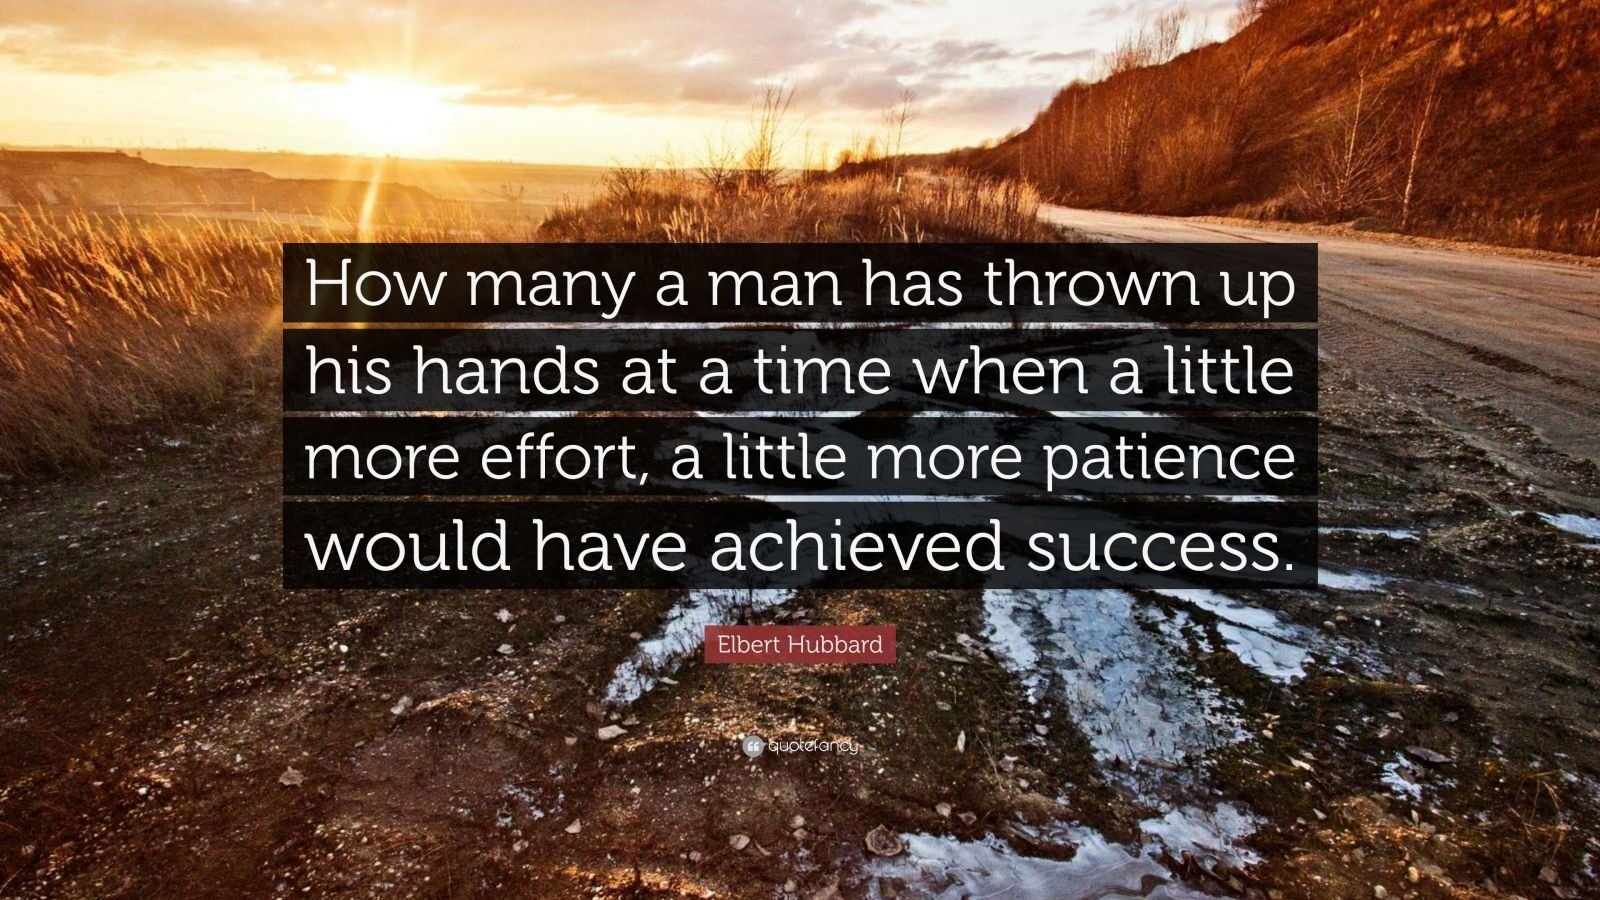 "Elbert Hubbard Quote: ""How many a man has thrown up his hands at a time when a little more effort, a little more patience would have achieved success."""